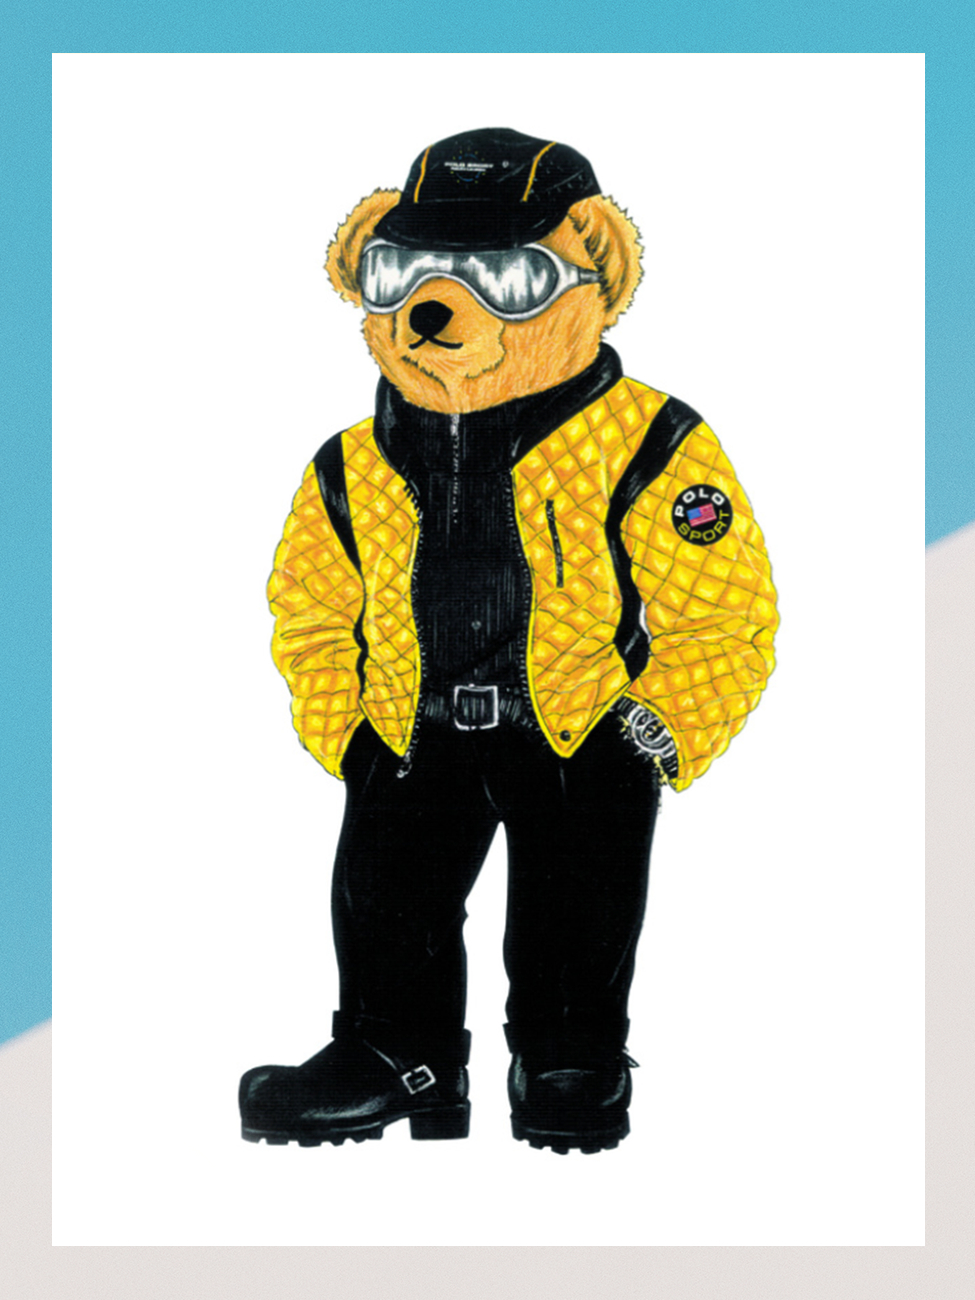 Polo Sport-clad Racer Bear made his debut in 1997